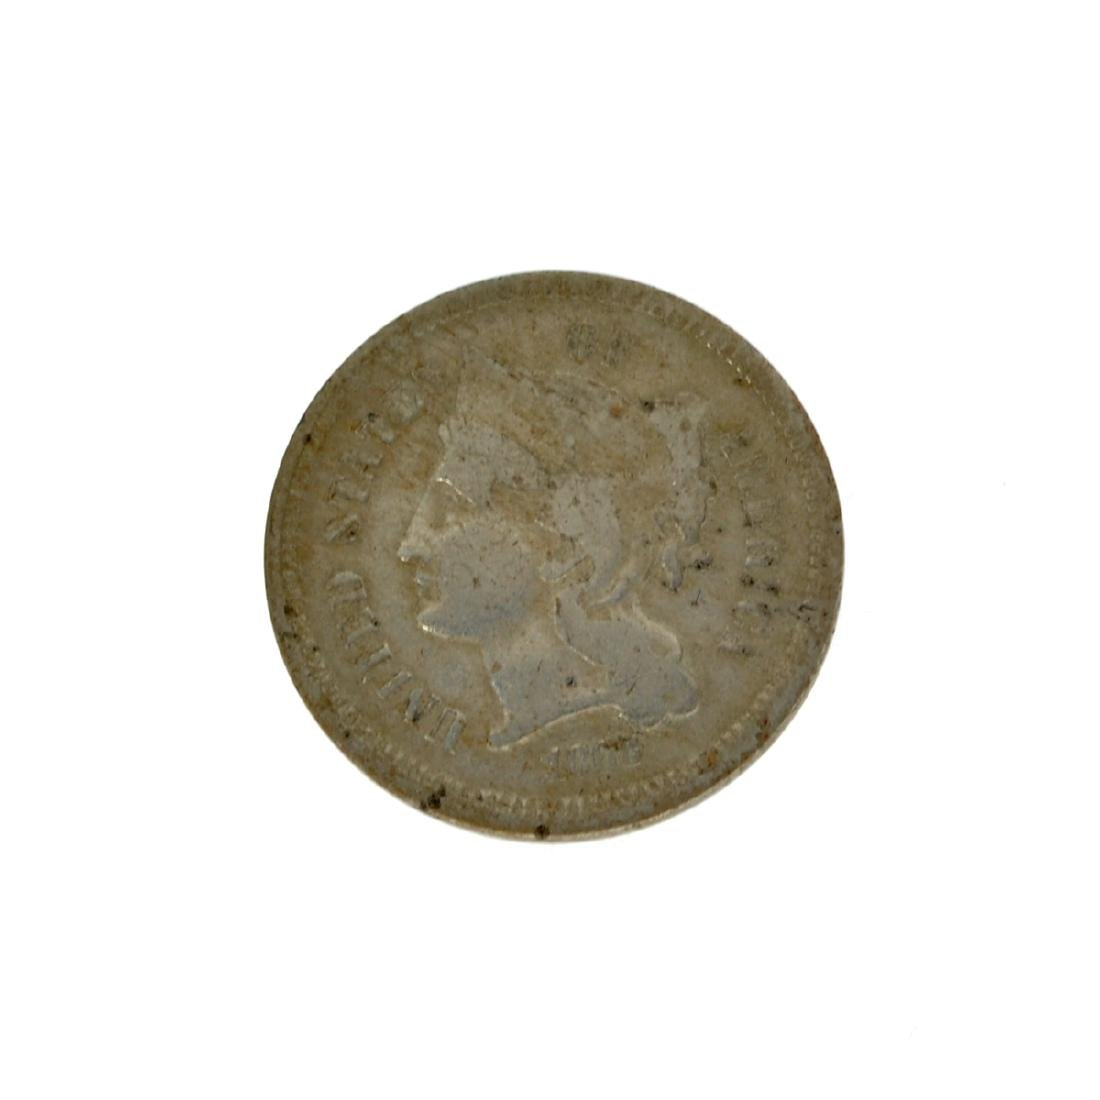 Rare 1868 Three-Cent Piece Nickel Coin